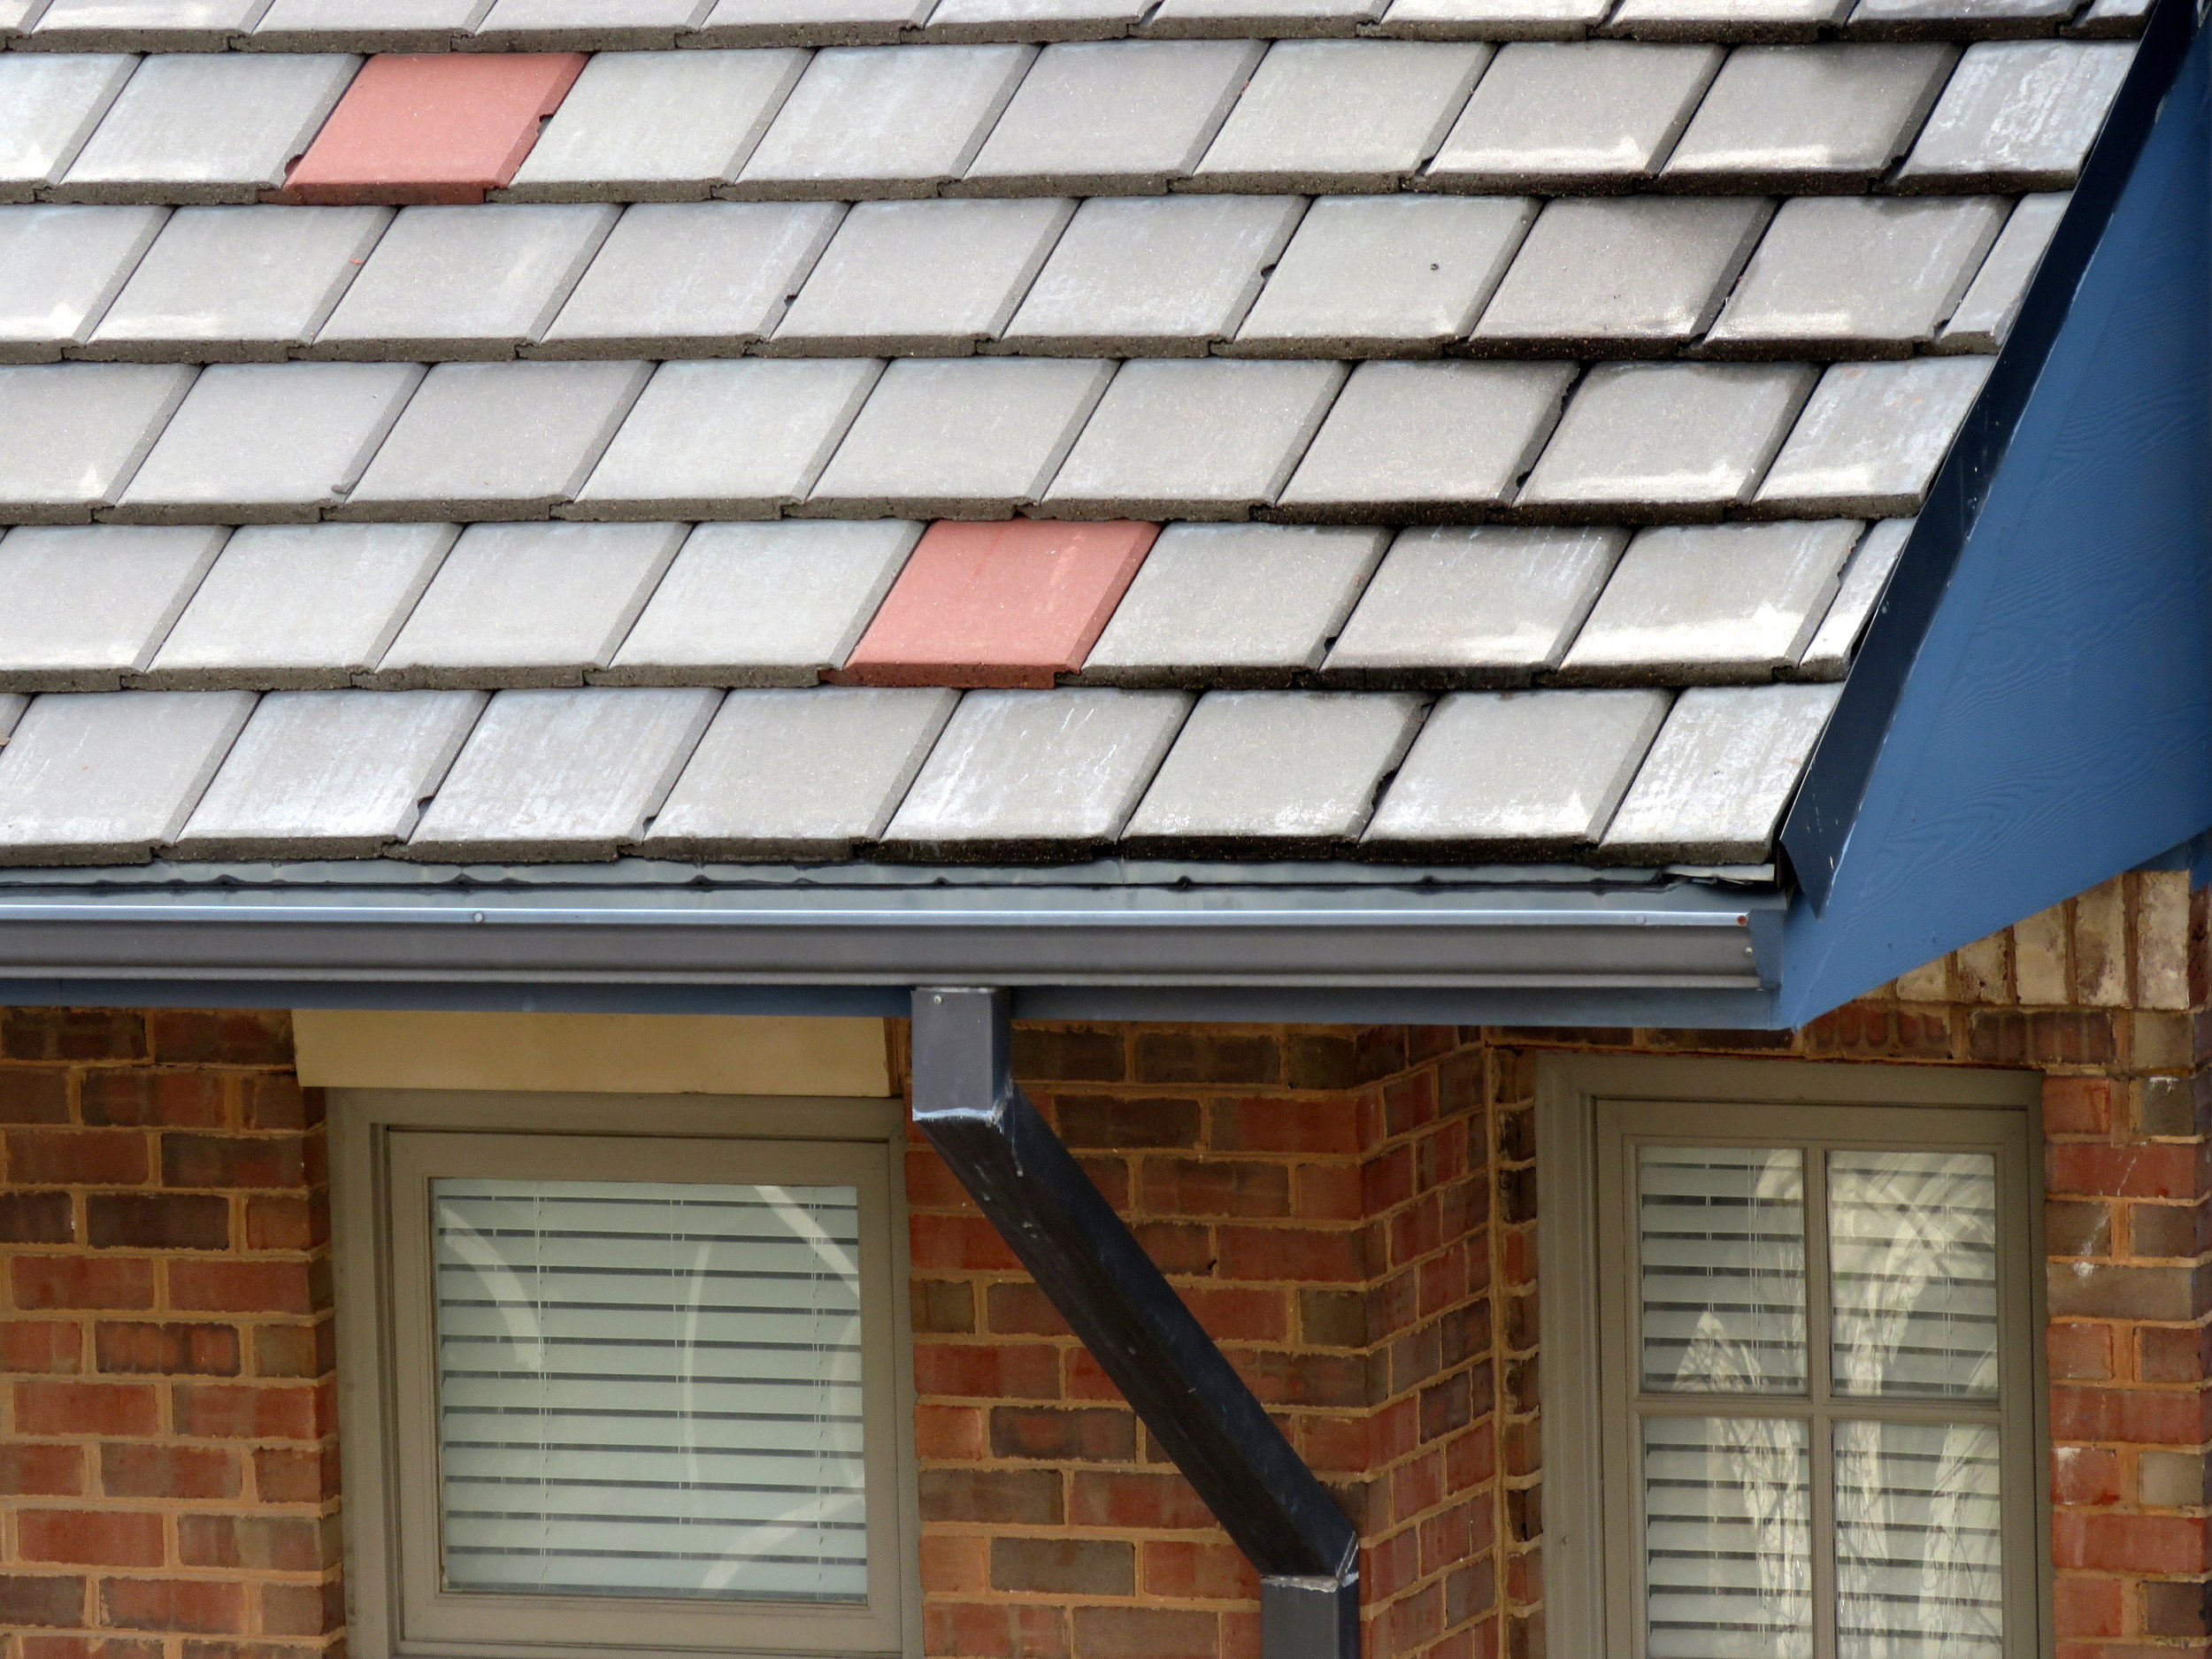 K-style gutter with downspout on a steep-slope roof.